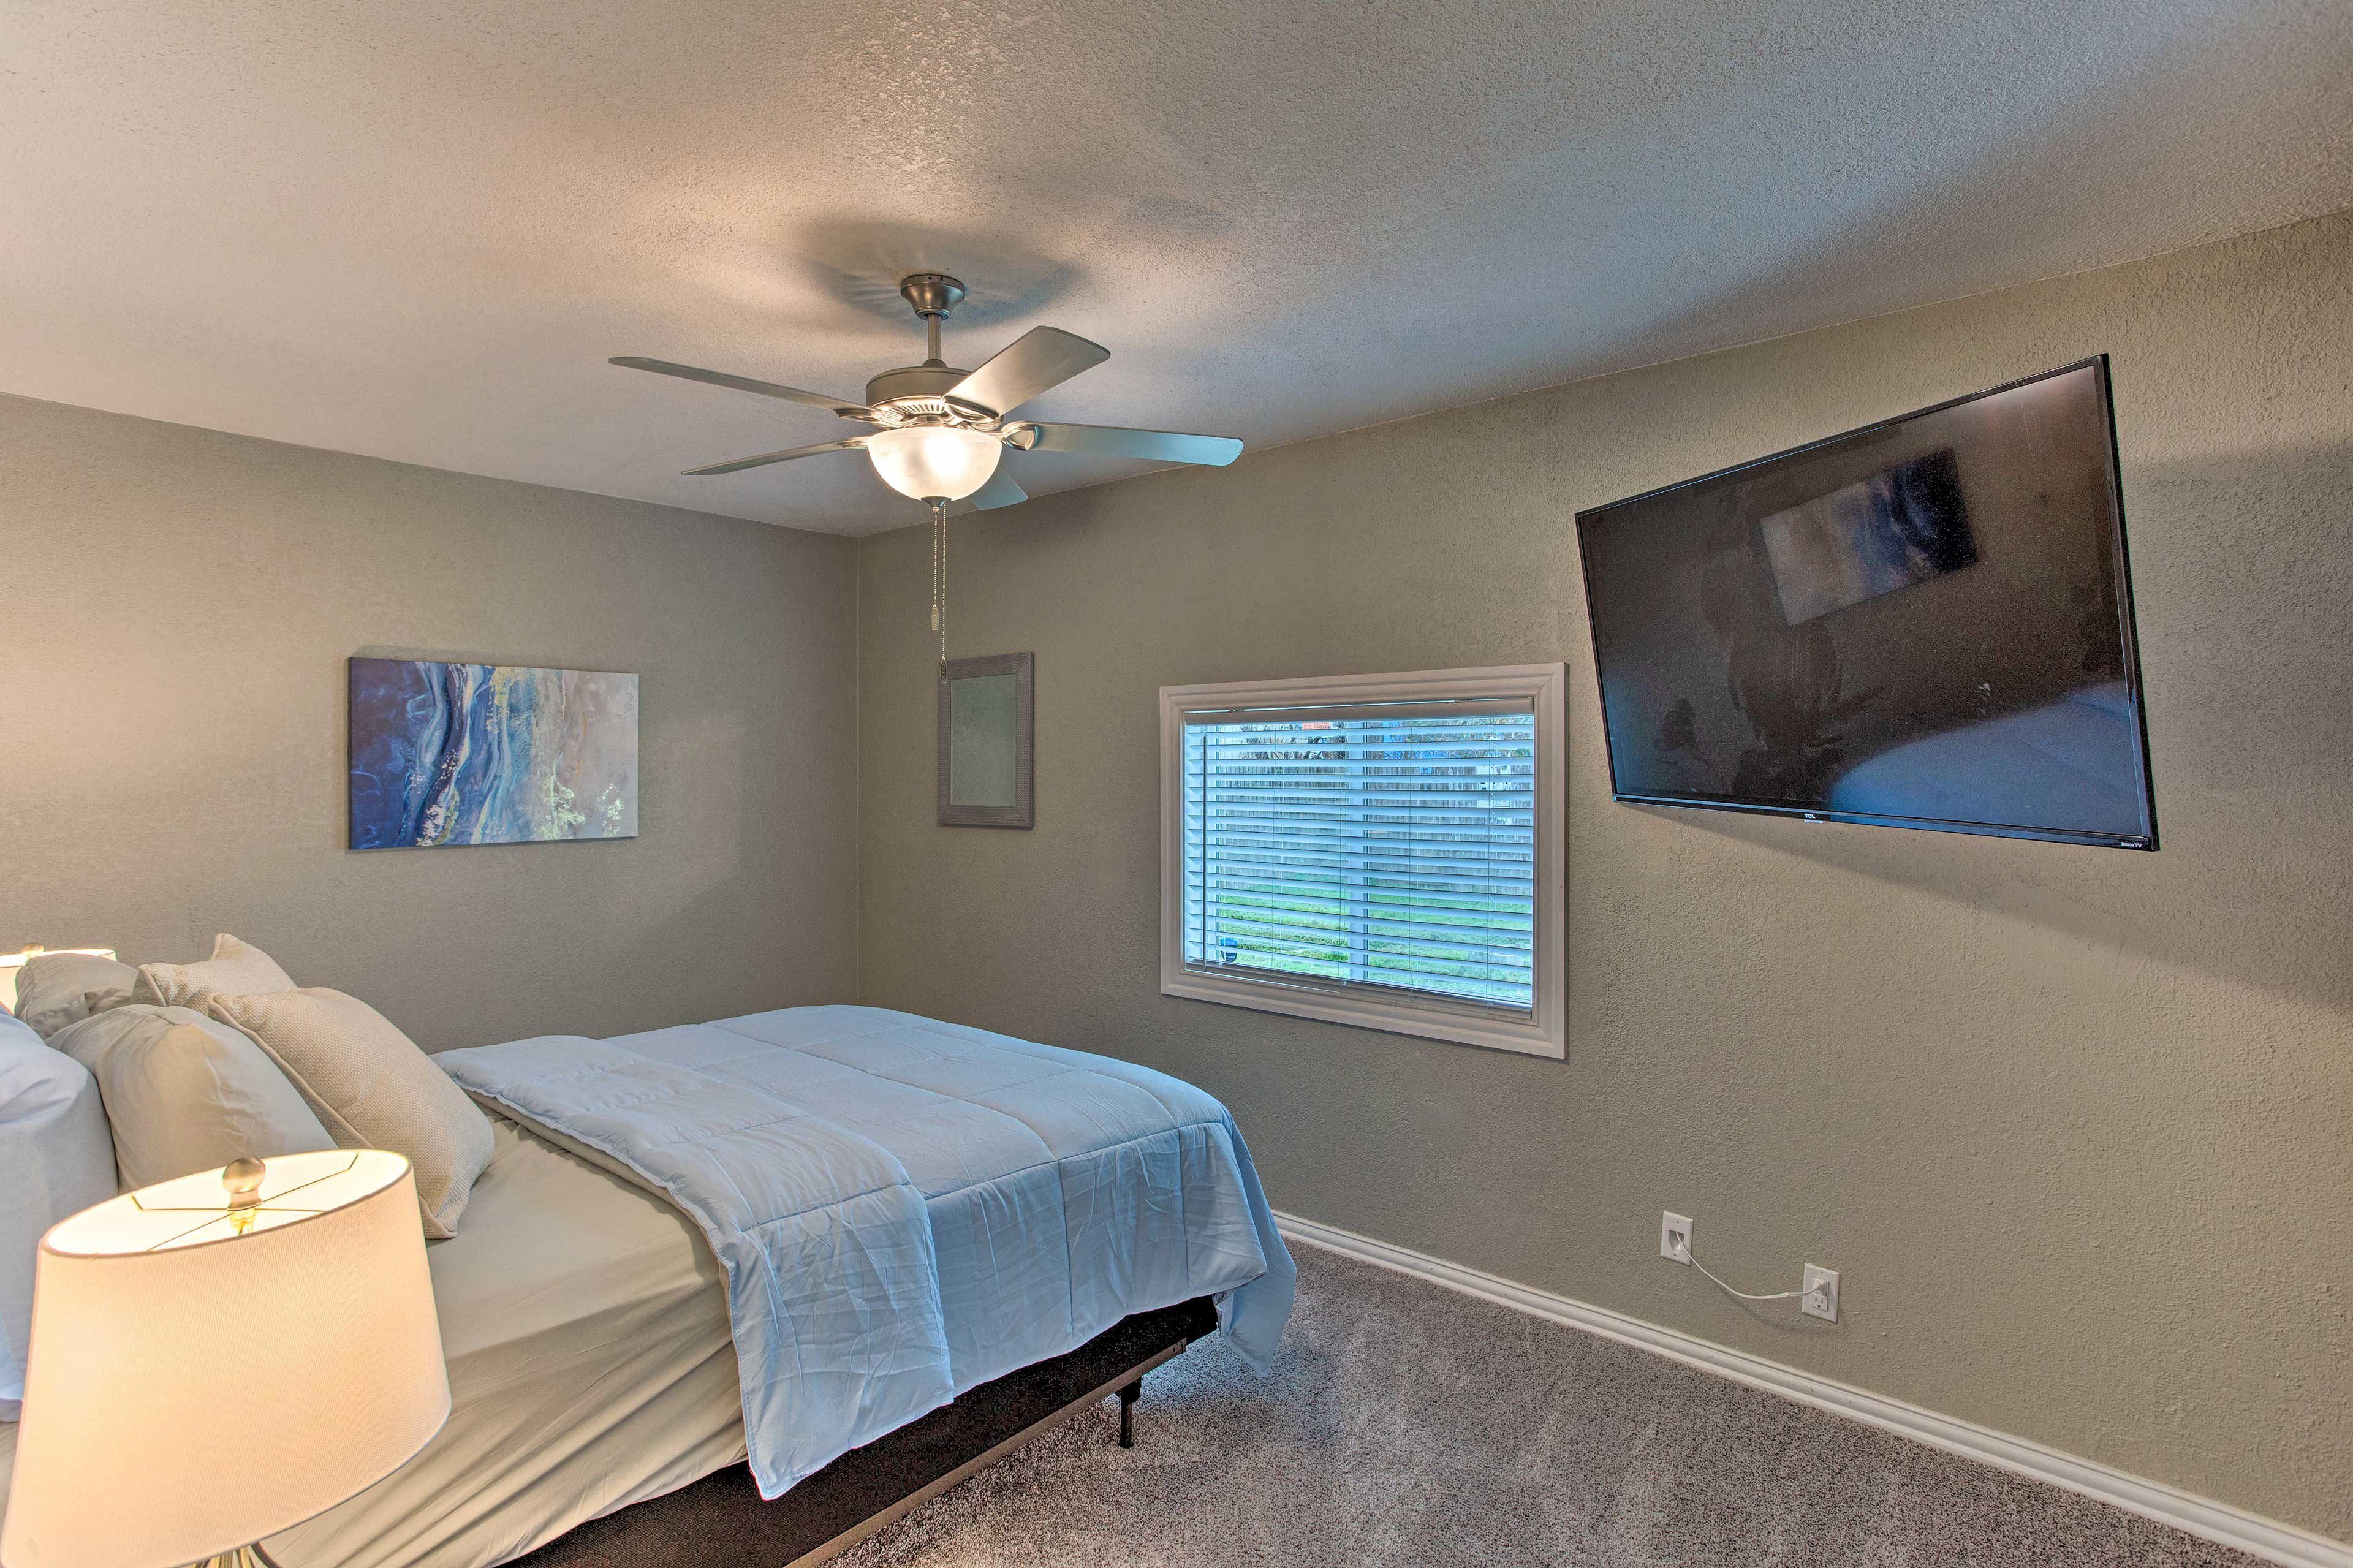 Claim this queen bed for your time in Arlington.